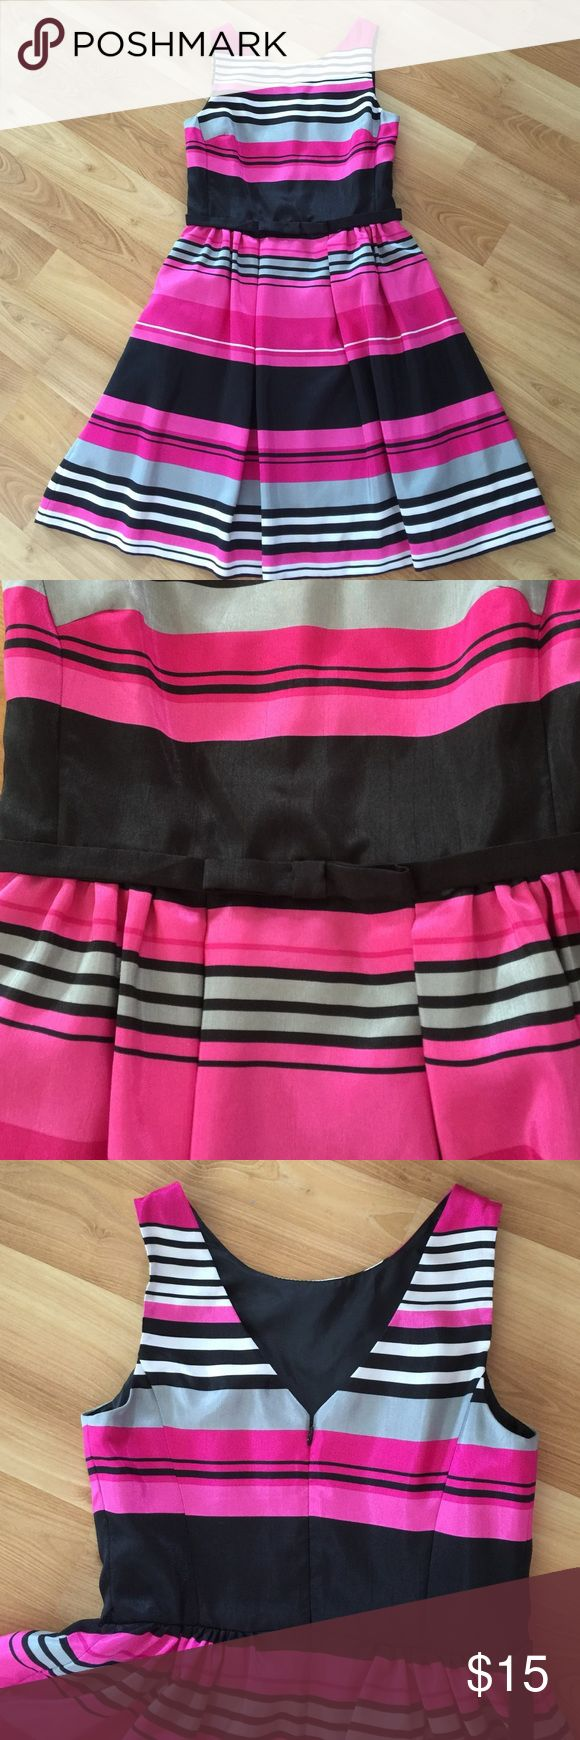 """Beautiful striped special occasion dress Super feminine fit and flare dress with bow detail at waist and v-back. 21"""" hem from waist. Bought from another posher but never able to wear, time to clean out my closet! Really a beautiful dress!!! Dresses"""